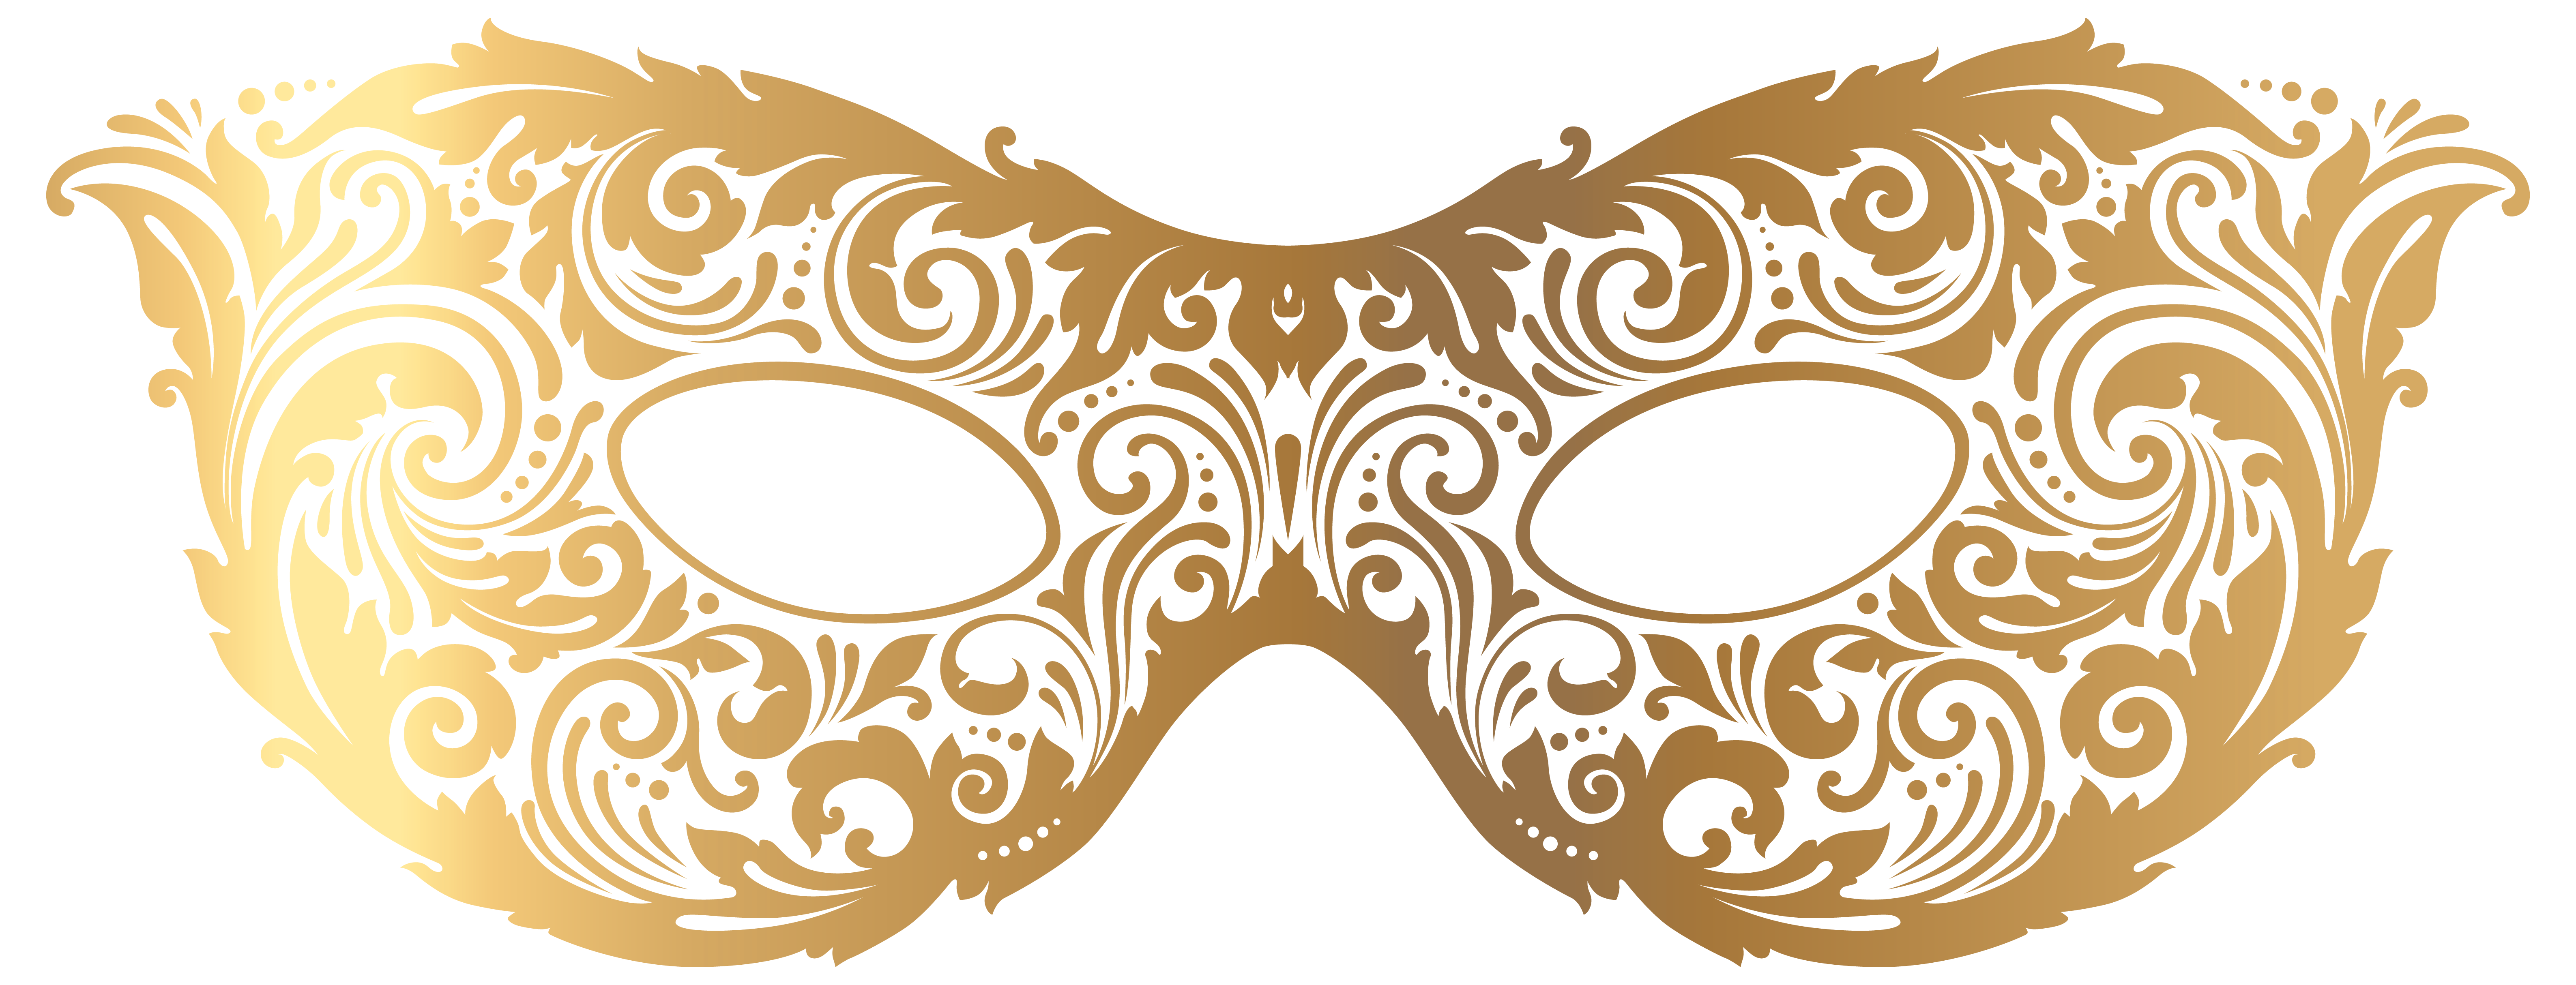 Mask PNG - 4291